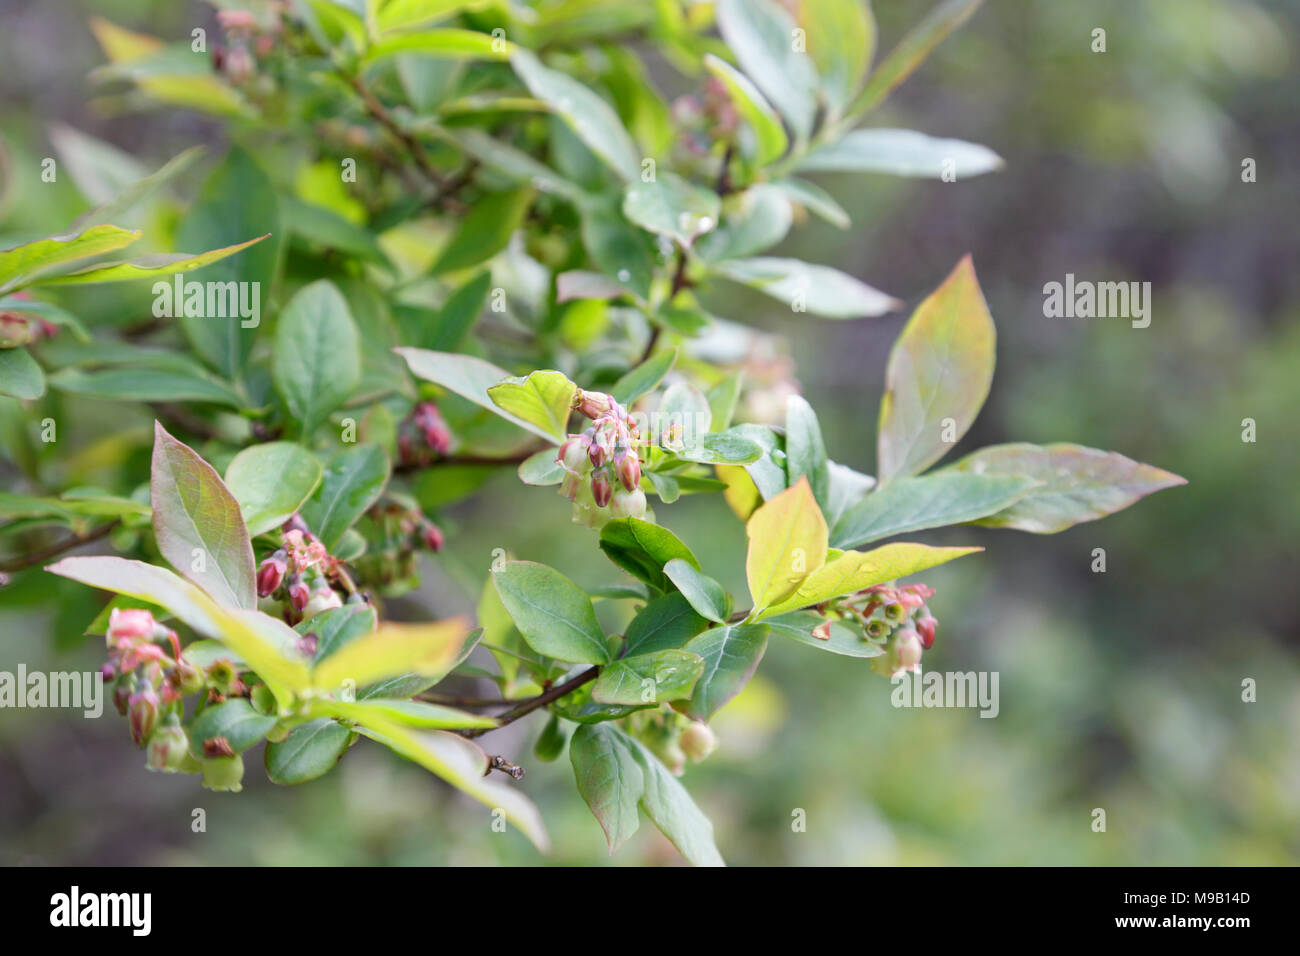 Pictures Of Wild Blueberry Bushes